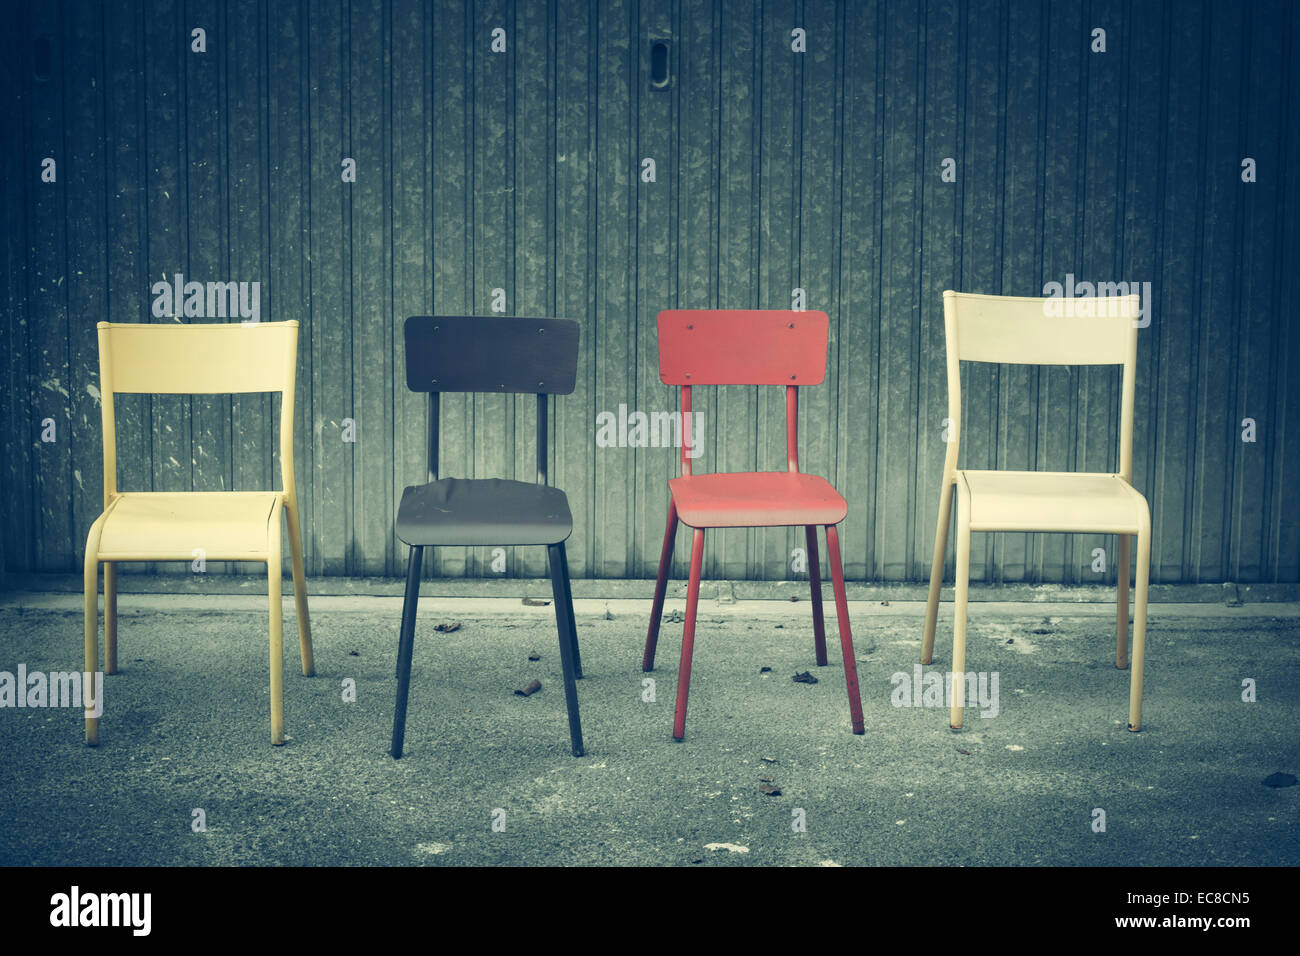 chairs street road - Stock Image